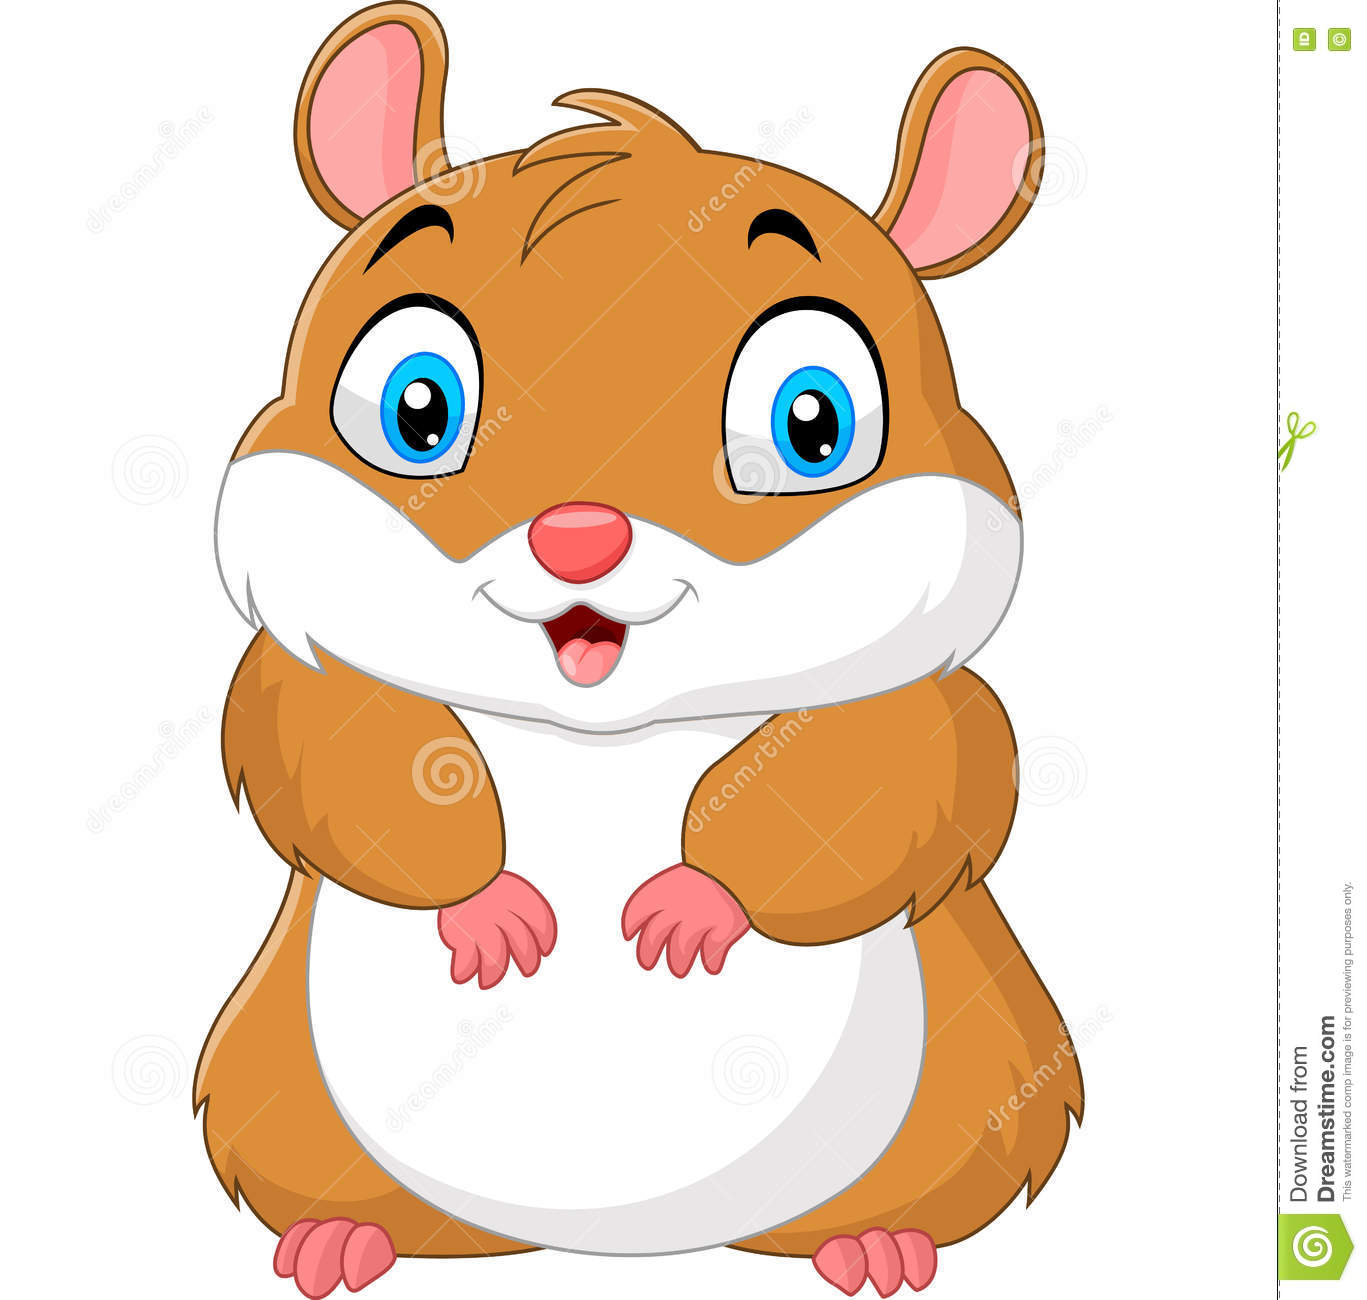 hamster dating website Looking for single russian women for marriage, love, and romance our free dating site is a great way to find an amazing women from russia, ukraine and other countries of the easten europe you don't need a credit card when you use our free dating site, our site is 100% free.